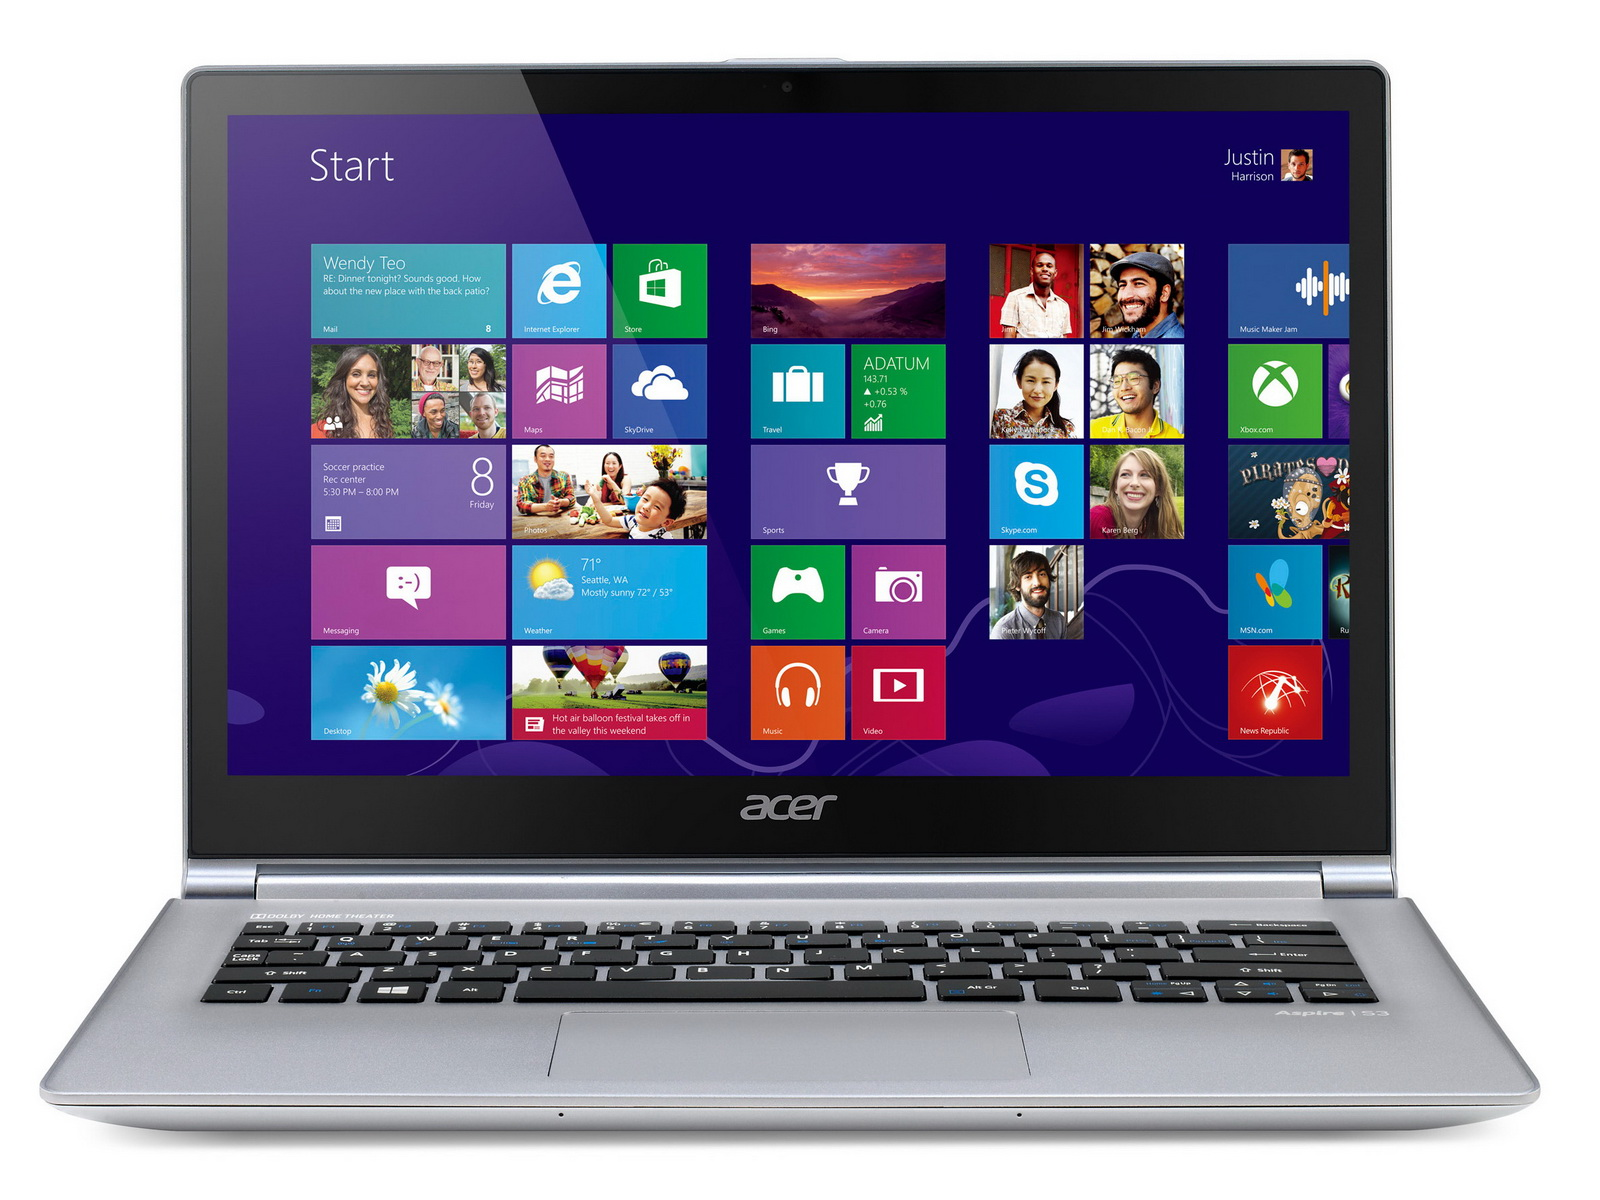 Acer aspire s3 review uk dating 8